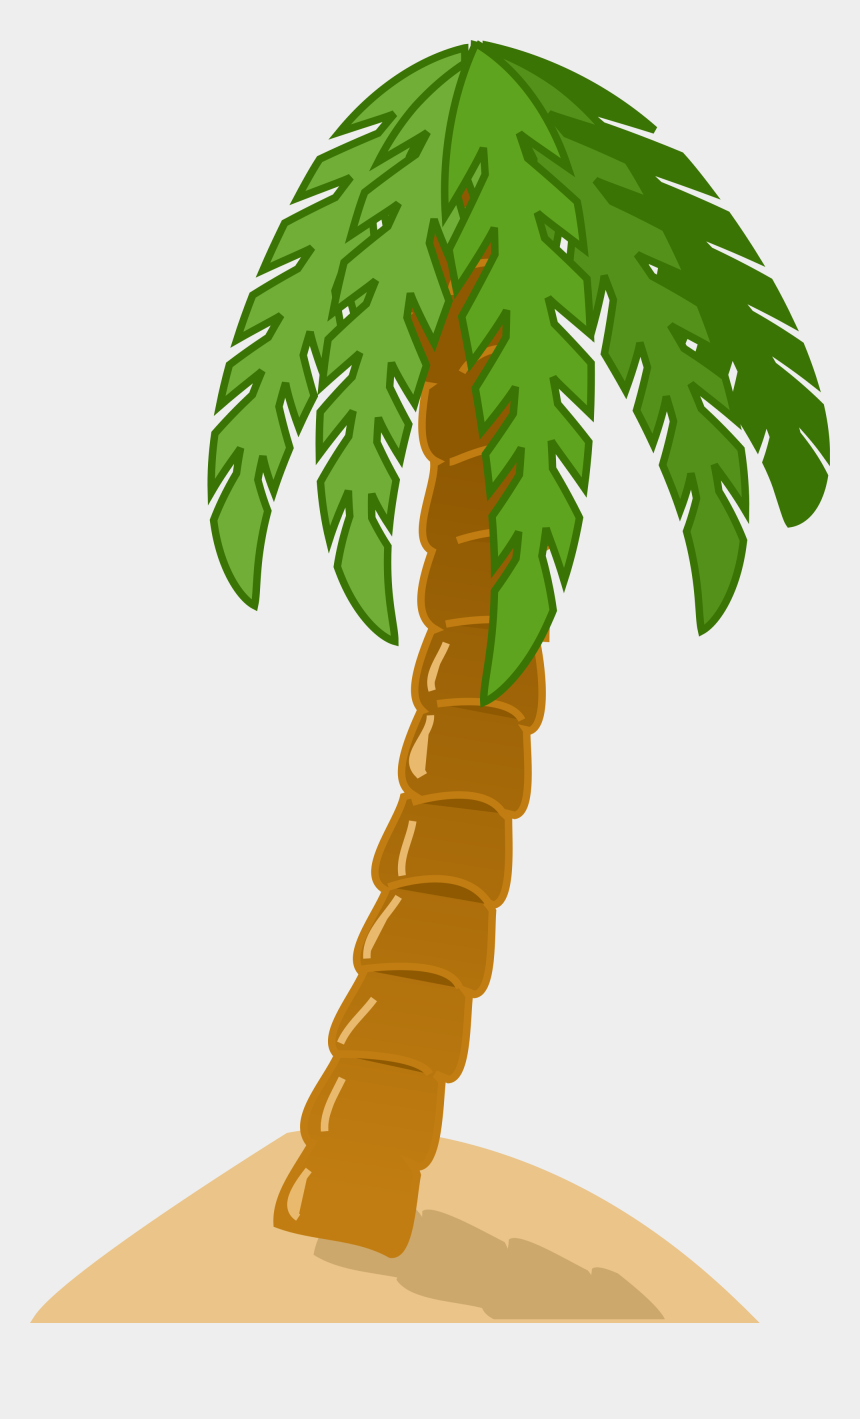 tree clipart, Cartoons - Family Tree Clipart Png - Dead Palm Tree Clip Art